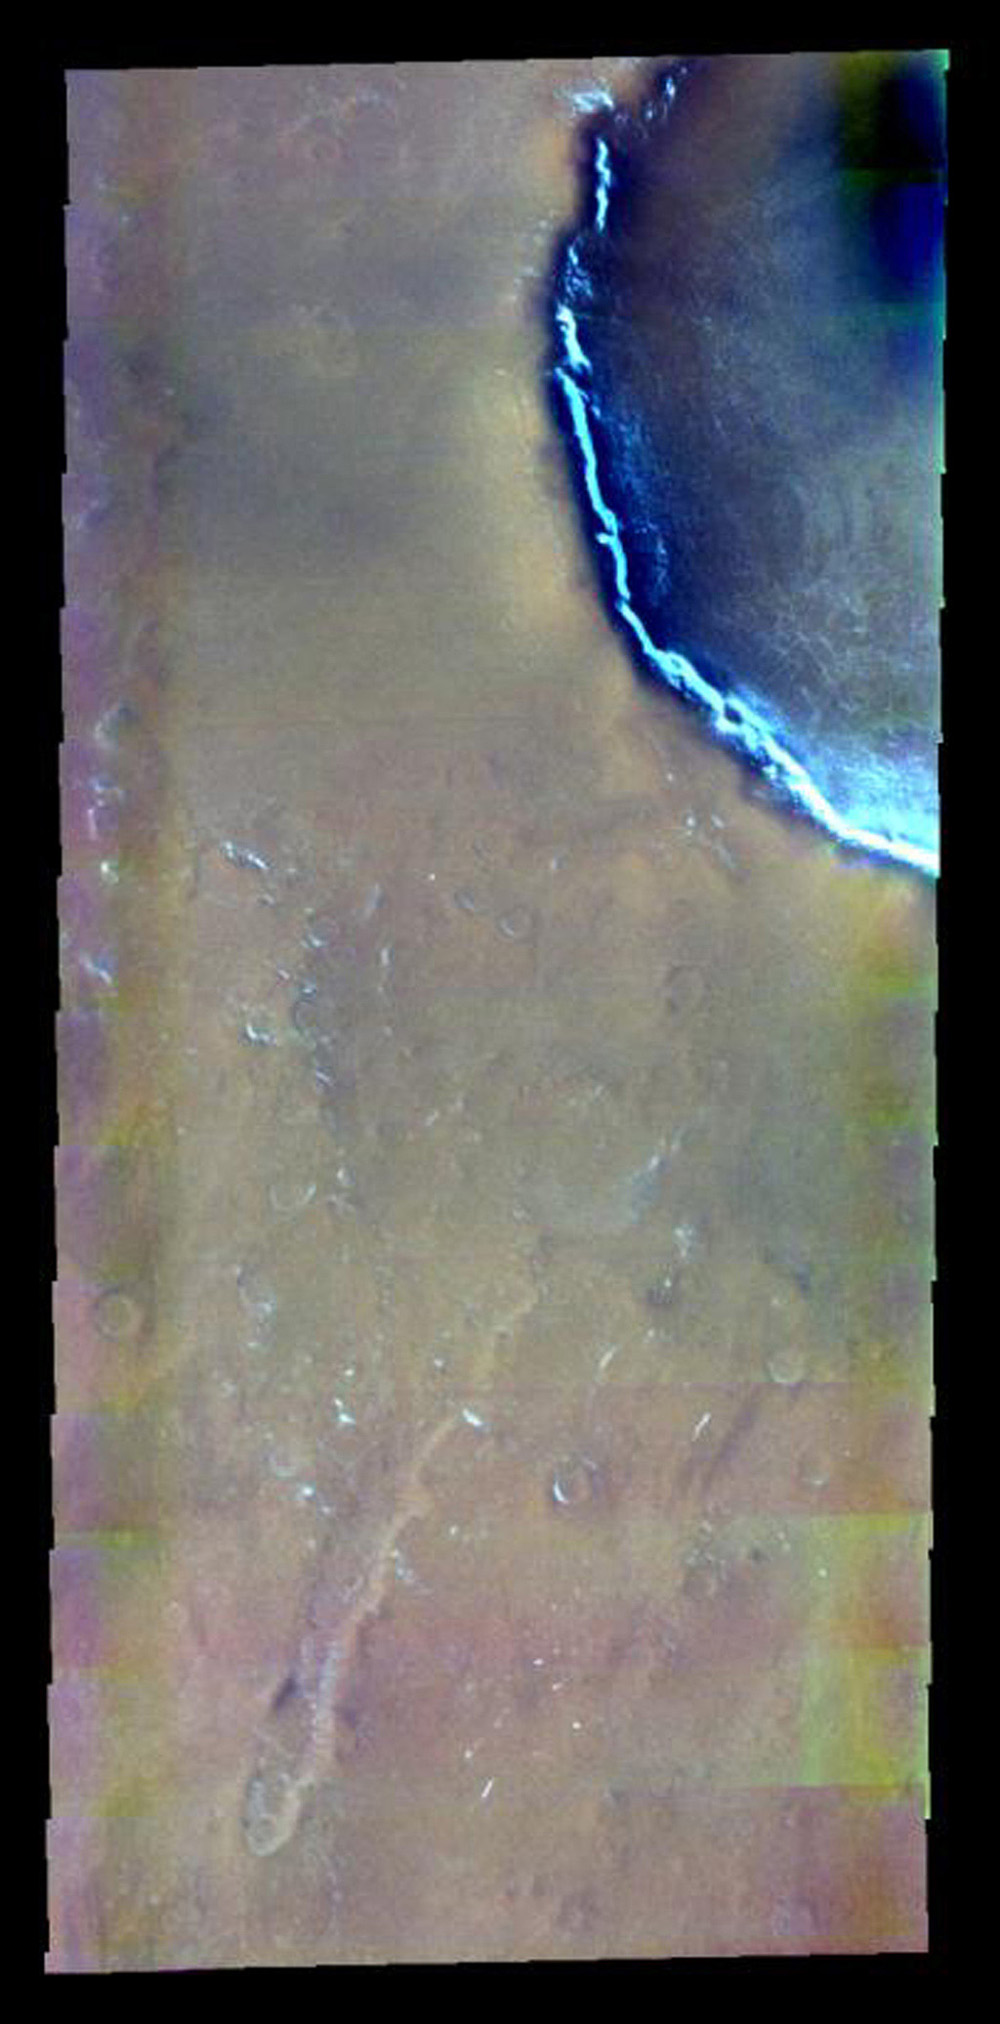 This false-color image from NASA's 2001 Mars Odyssey released on April 30, 2004 shows the martian surface during the northern spring season in Vastitas Borealis.